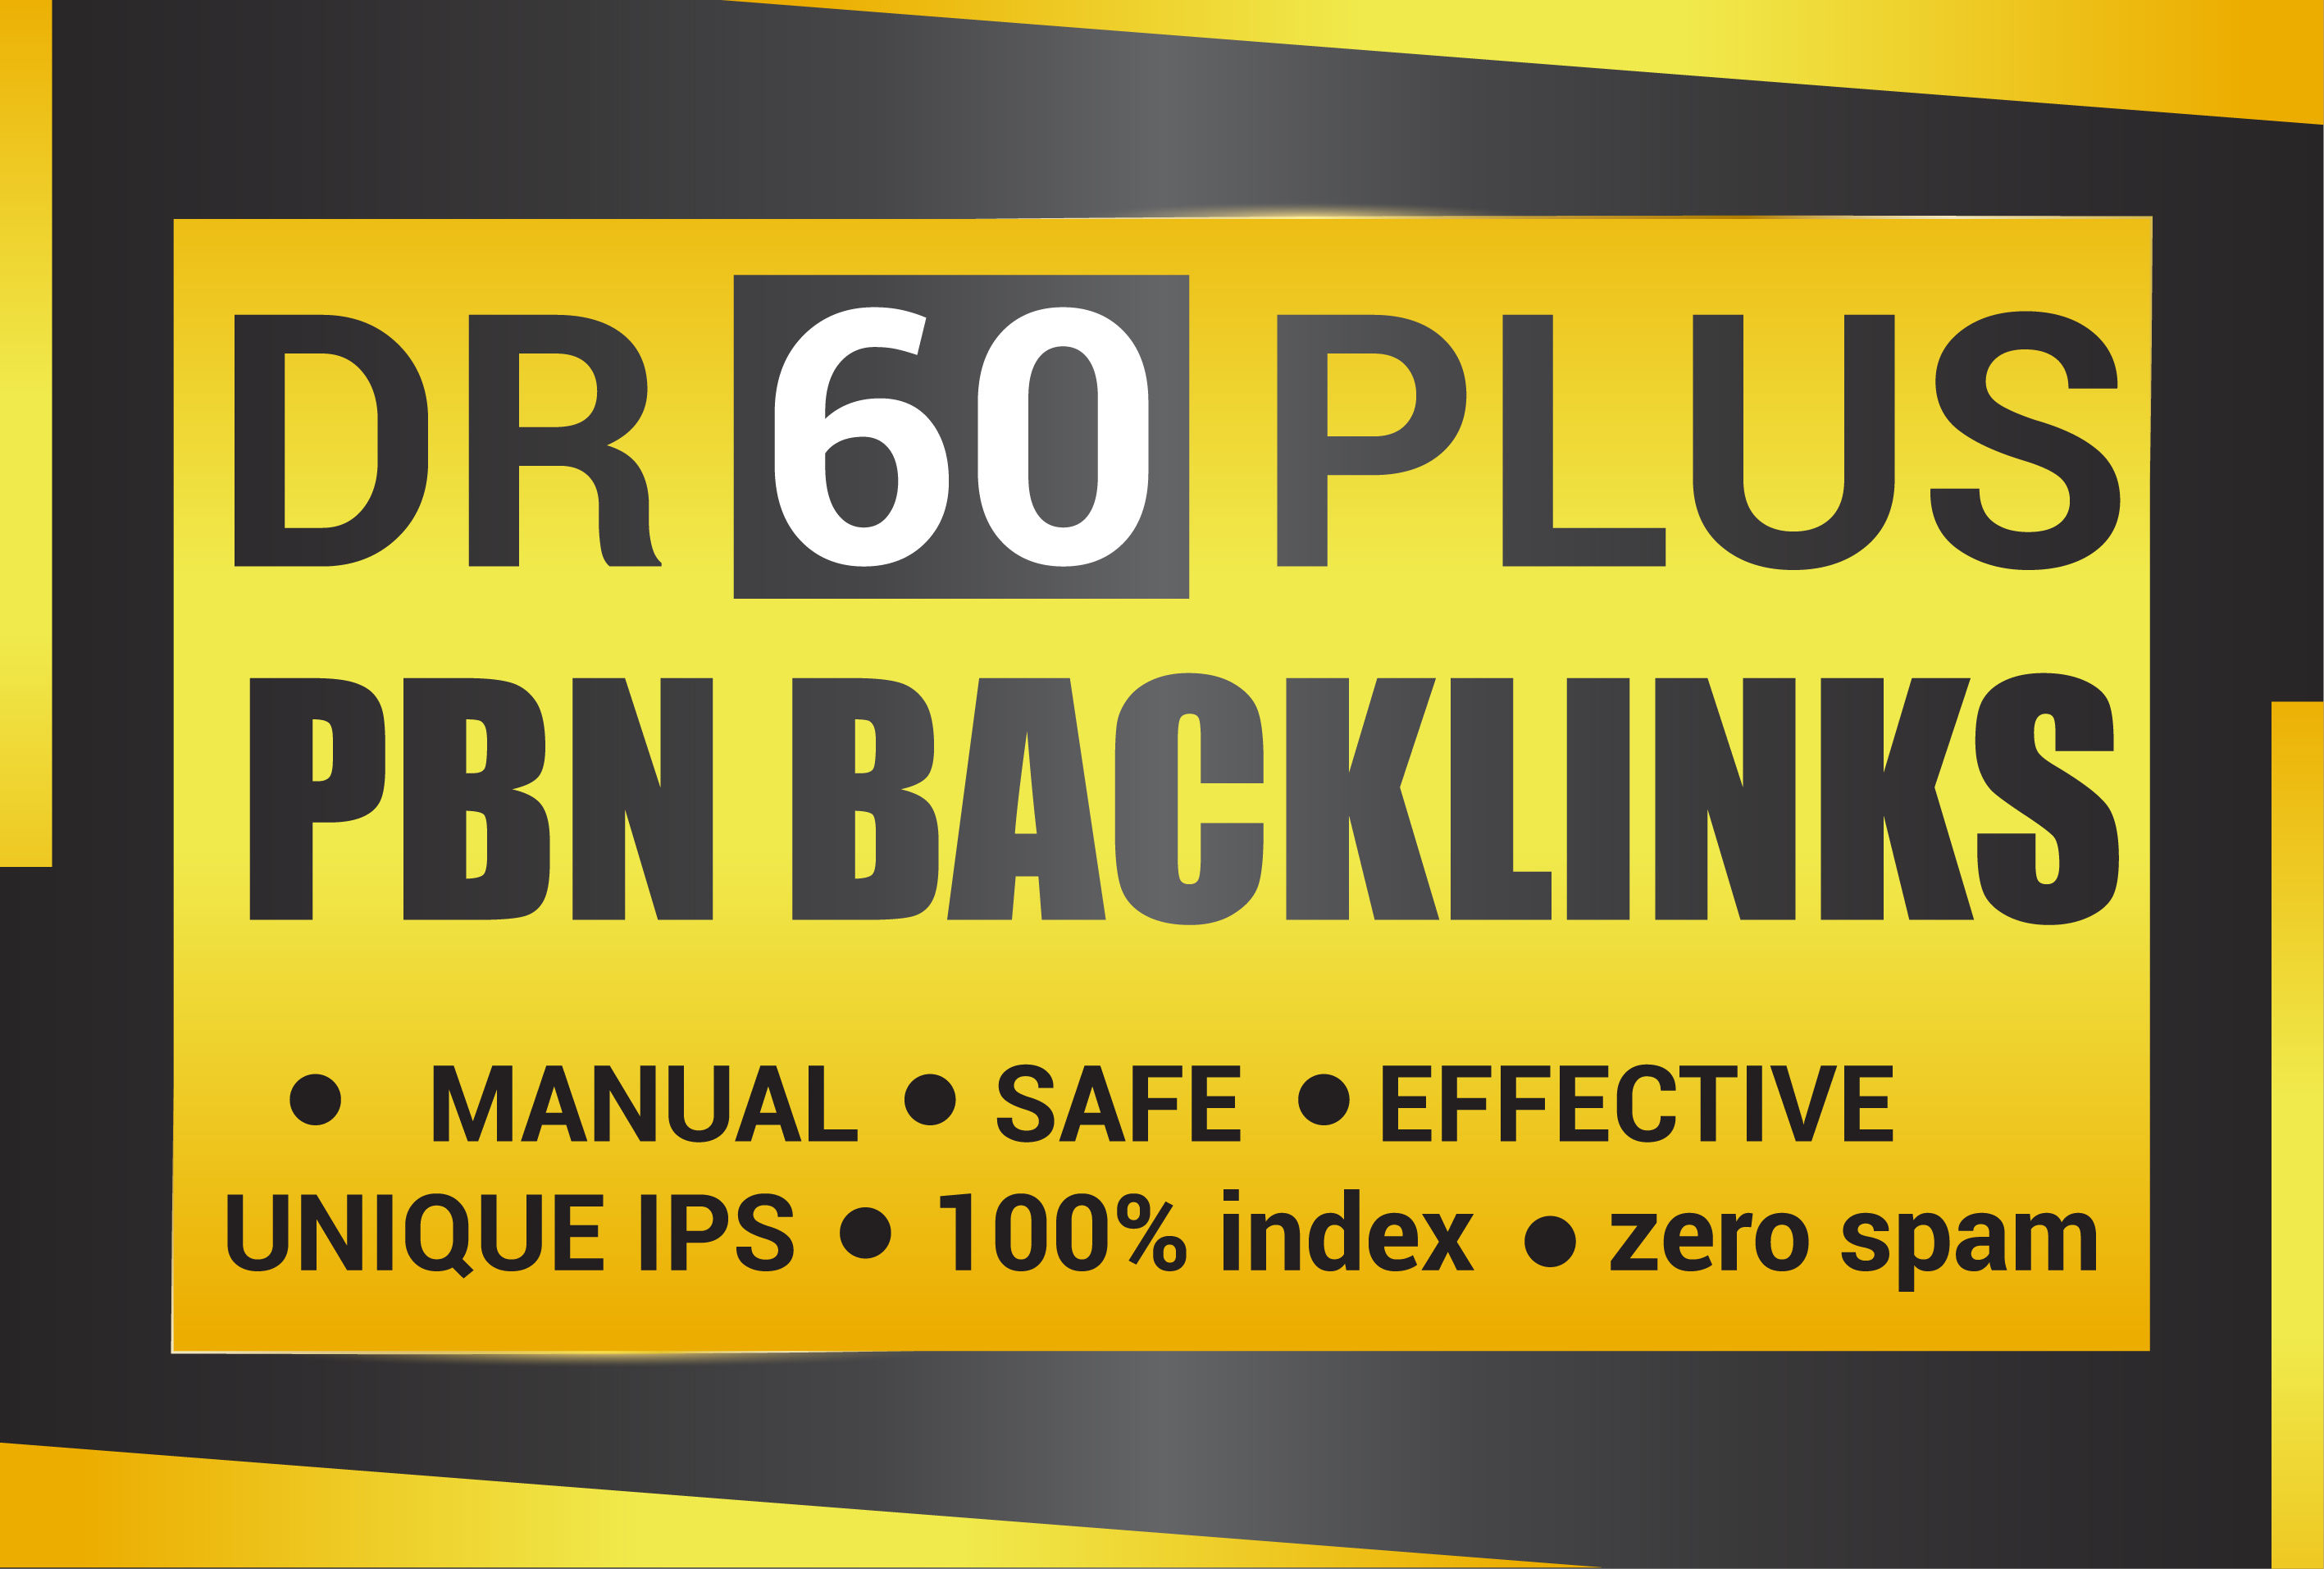 Permanent 10 DR 60 Plus Homepage High Quality PBN Backlinks